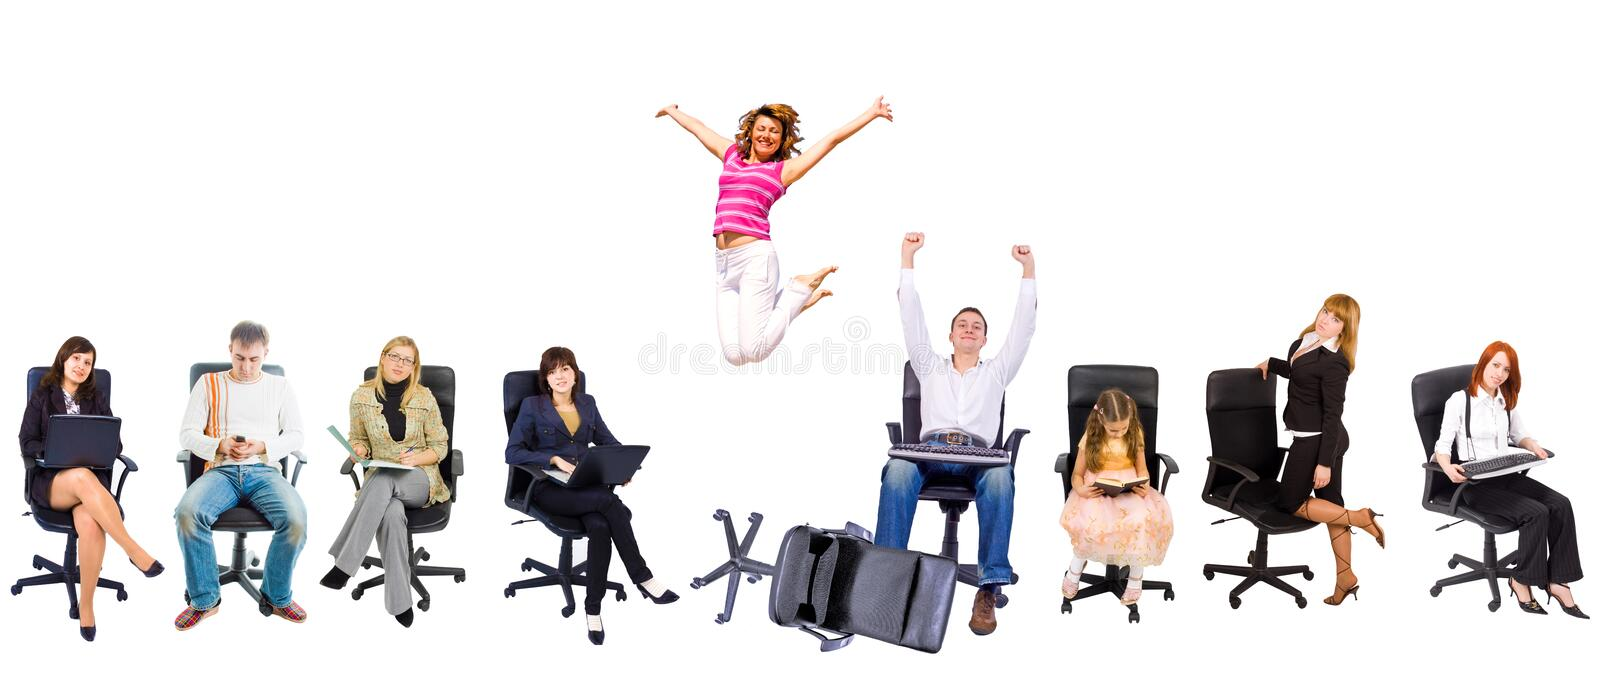 Several people in office chairs royalty free stock images